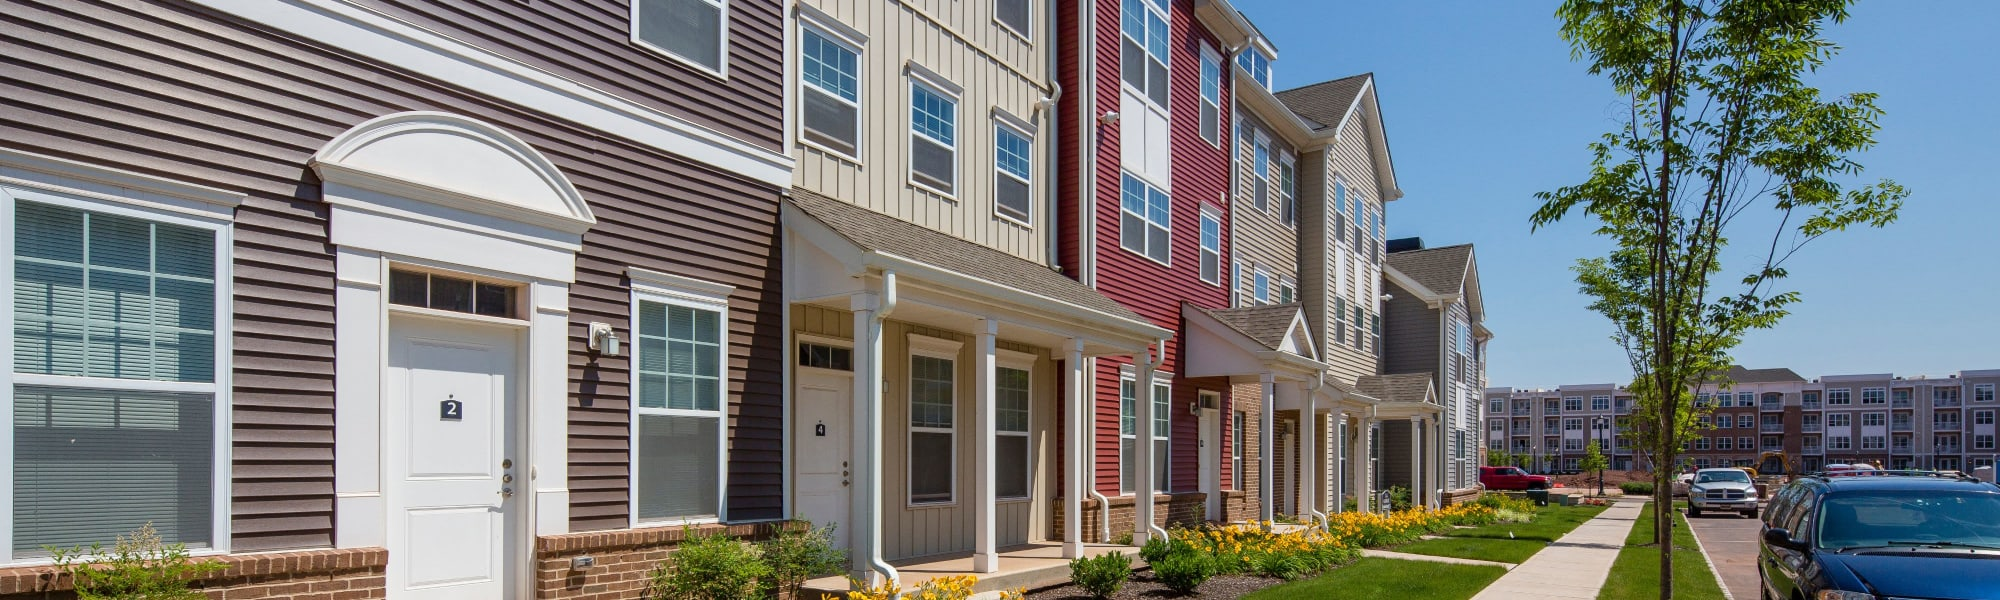 Schedule a tour of The Grove Somerset in Somerset, New Jersey